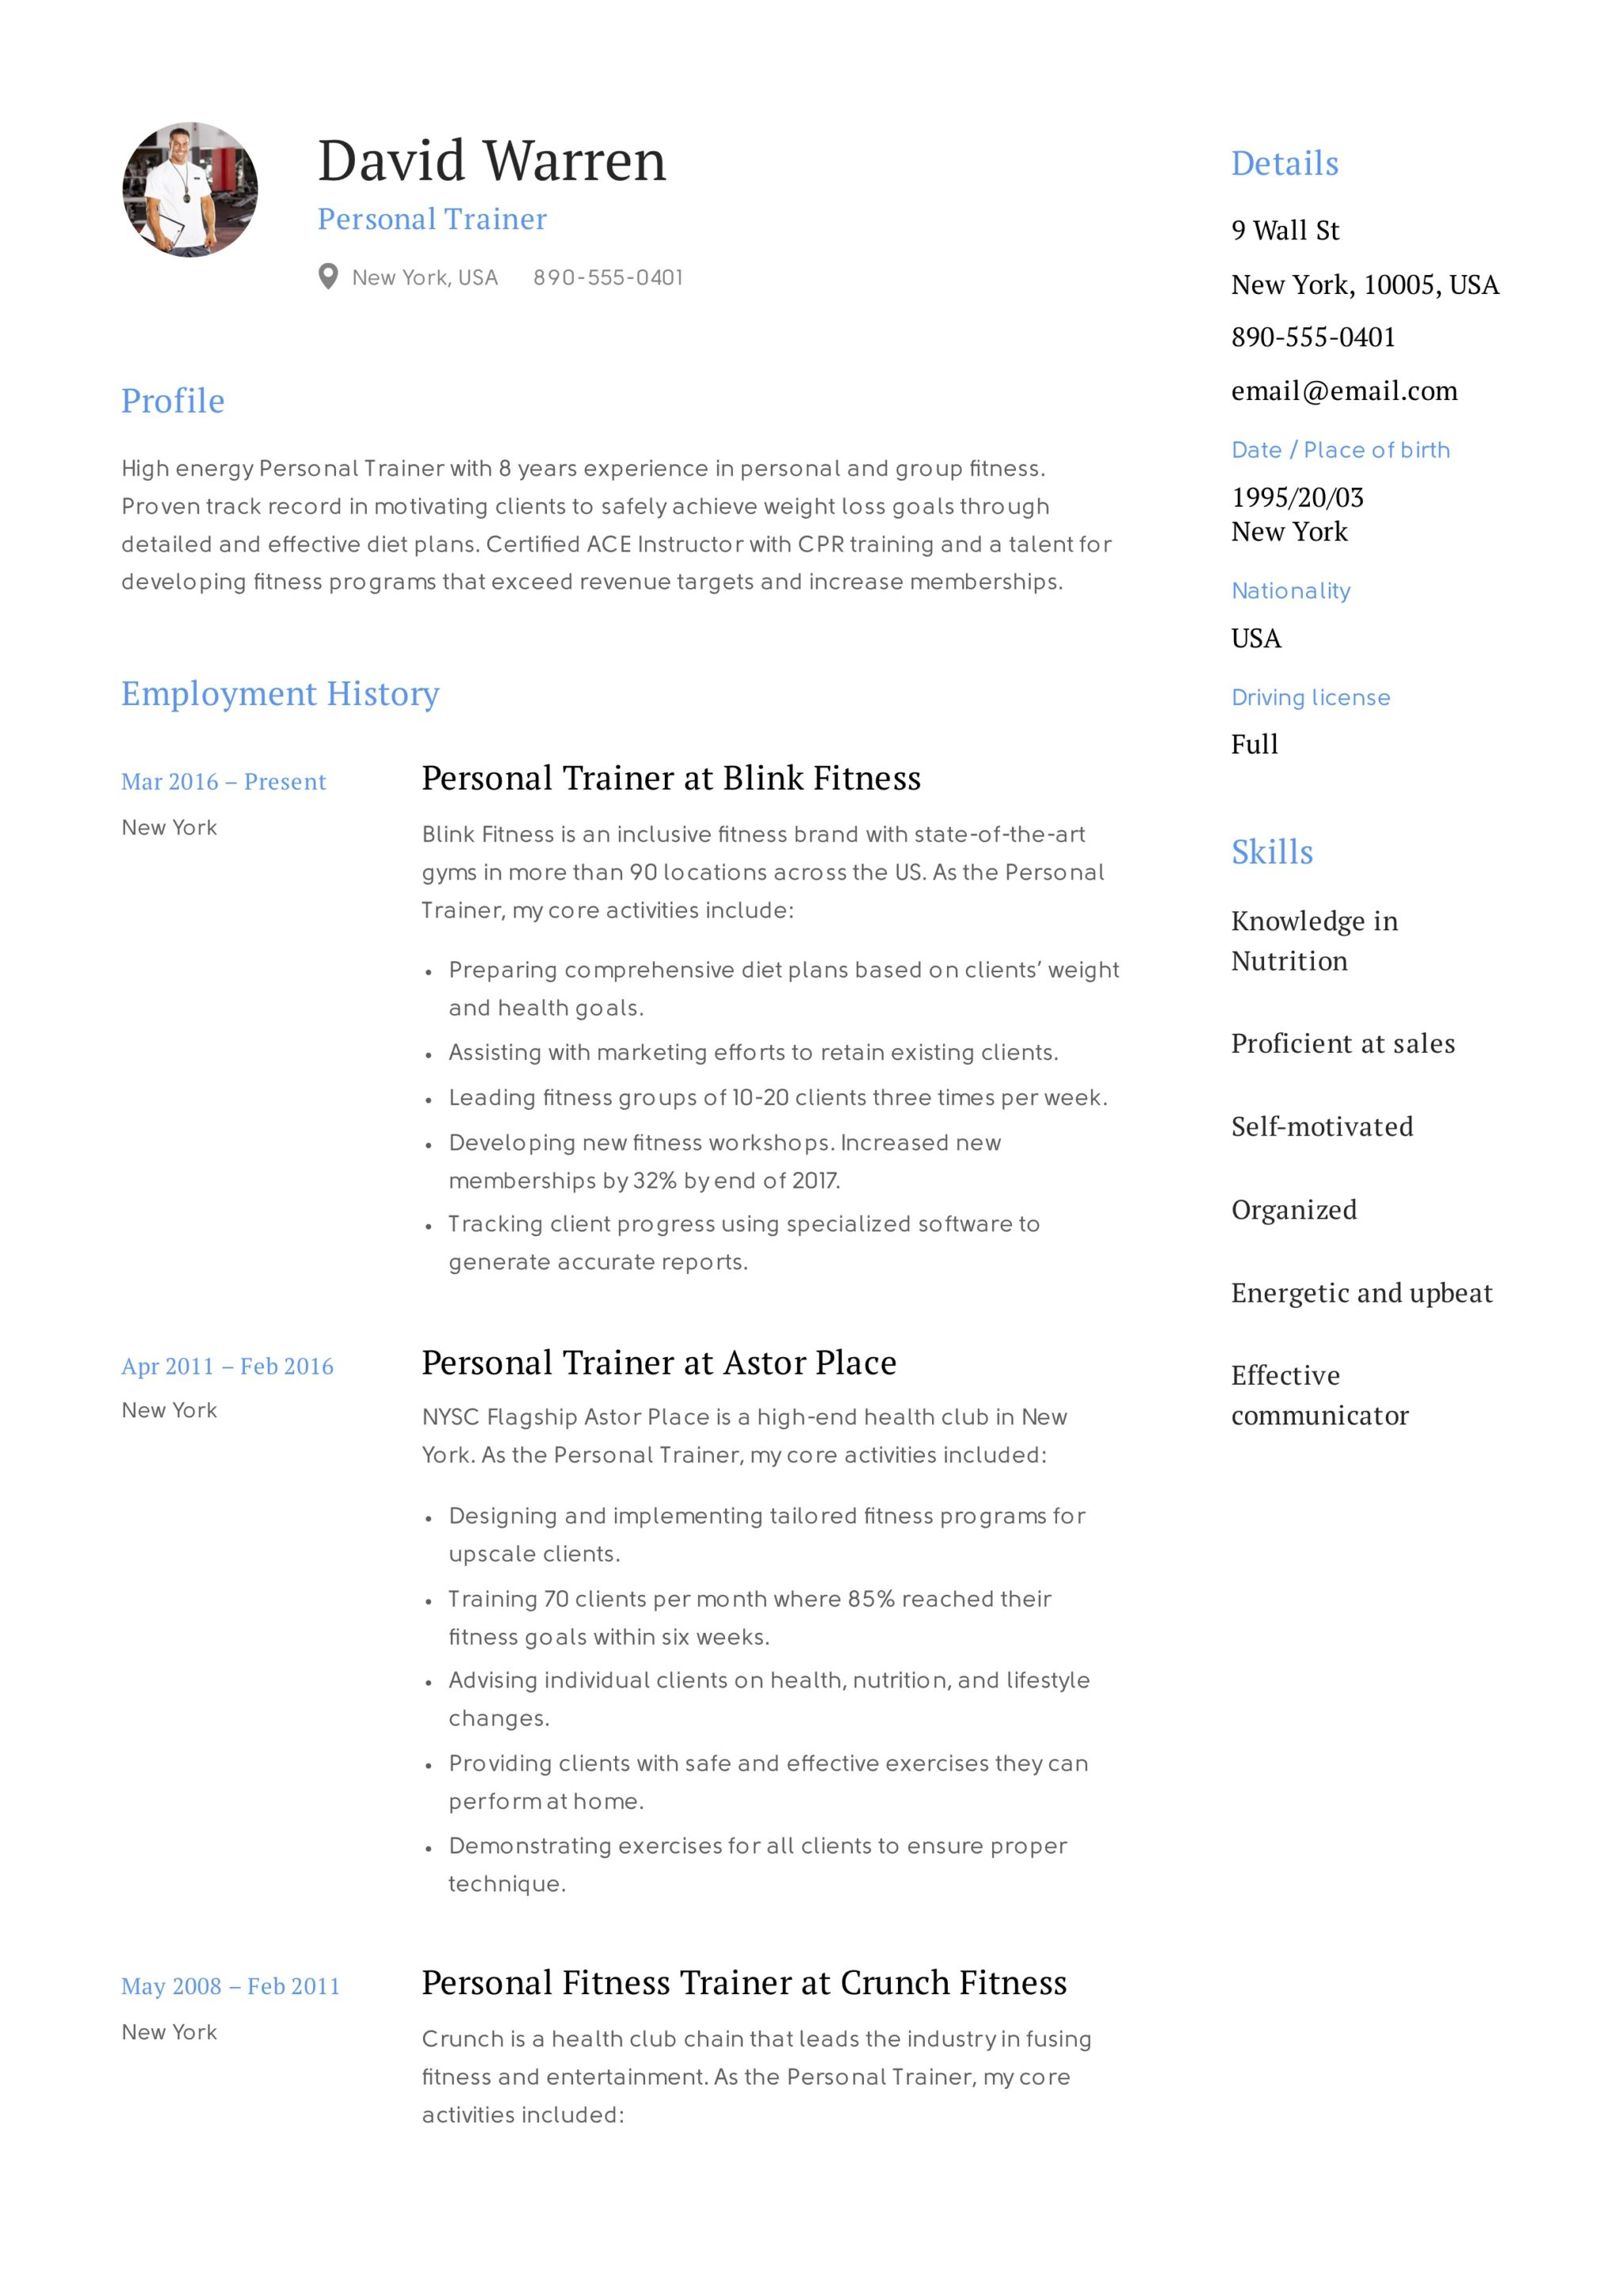 Resume Example - Personal Trainer